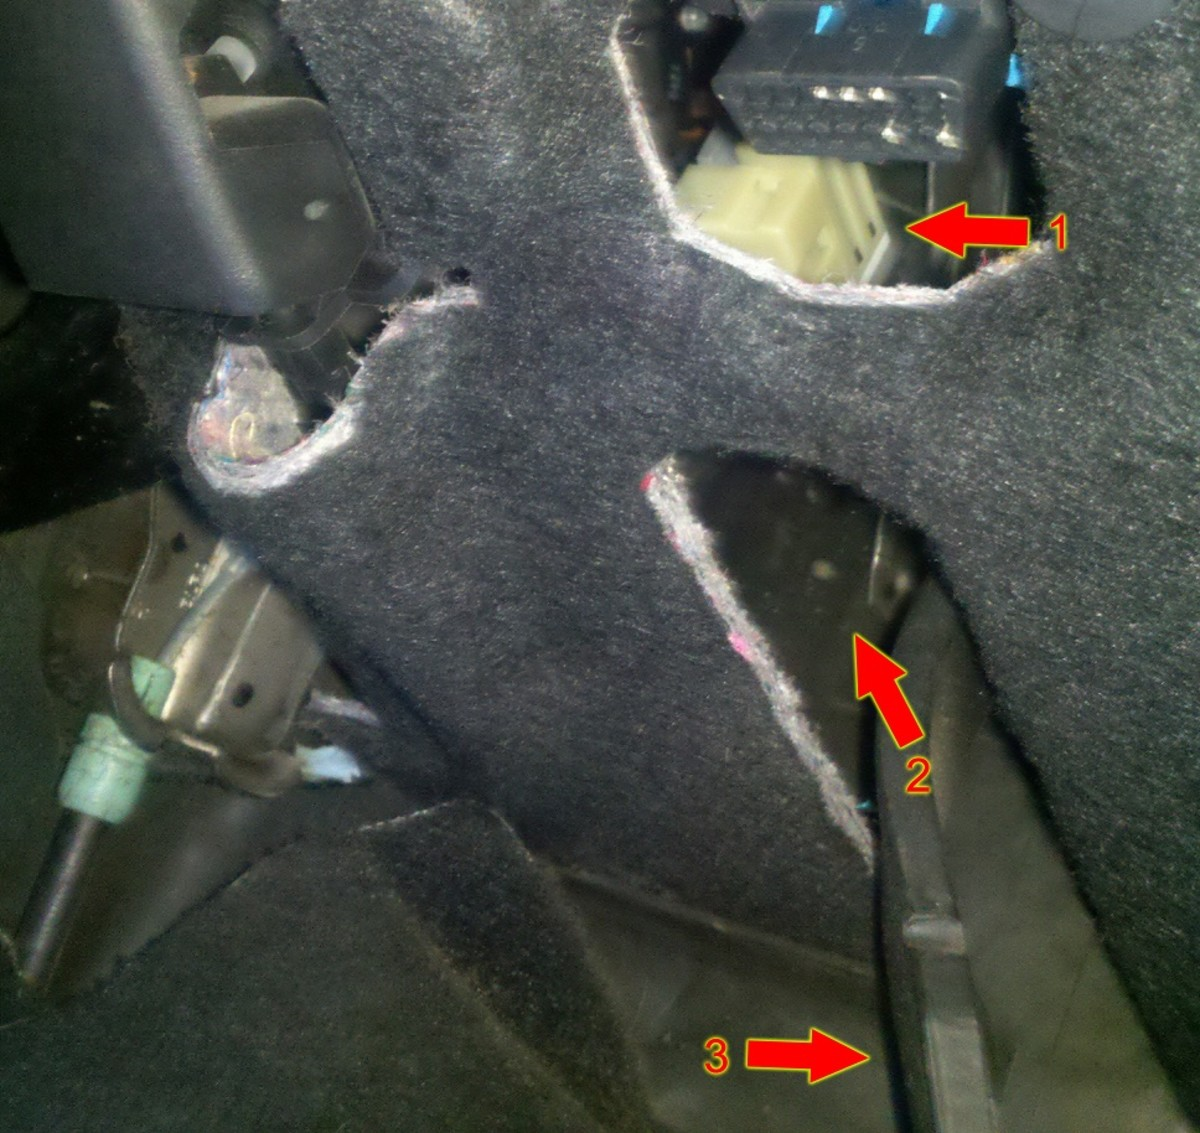 Step 5 Locate The Brake Switch